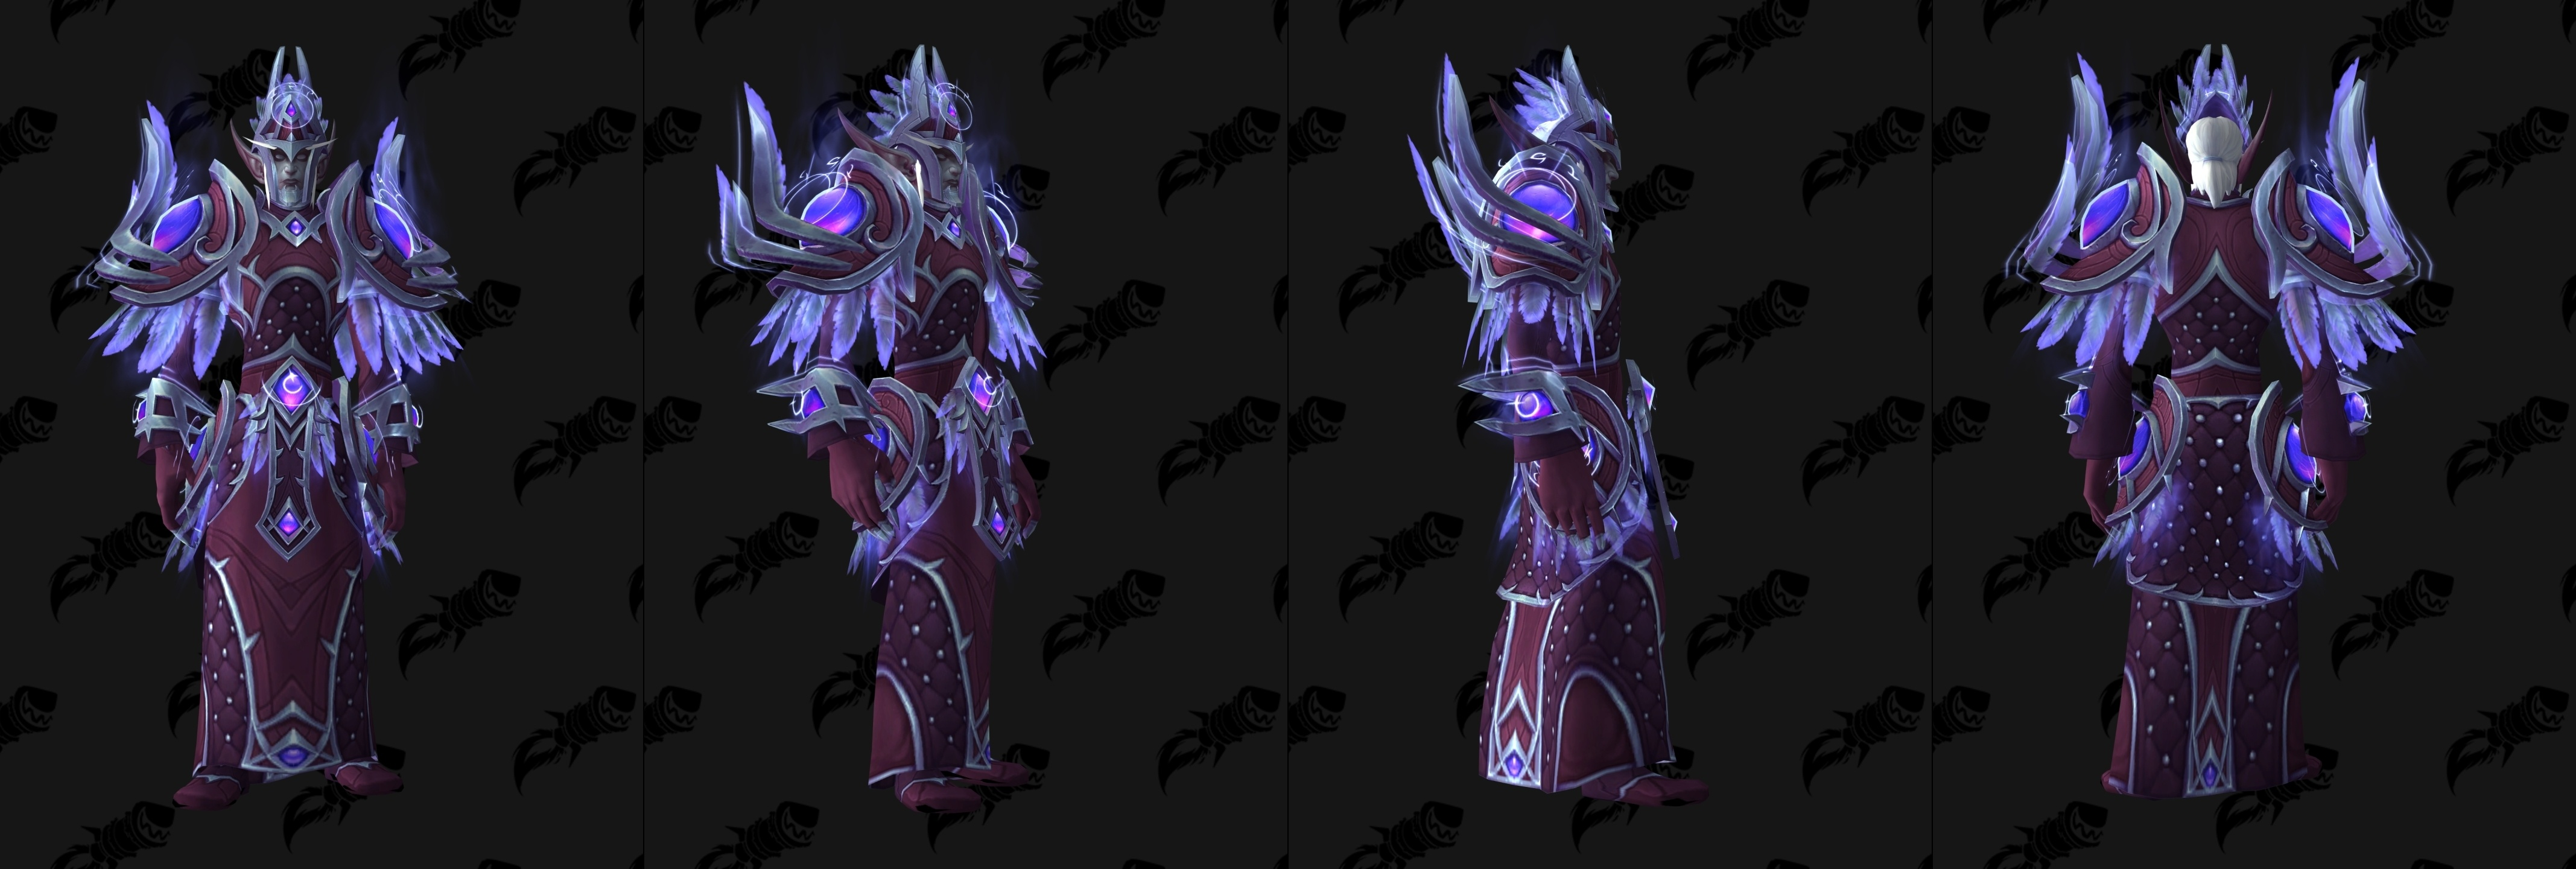 Heritage Armor Sets Guides Wowhead Female void elf heritage armor no longer clips with most hairstyles. heritage armor sets guides wowhead